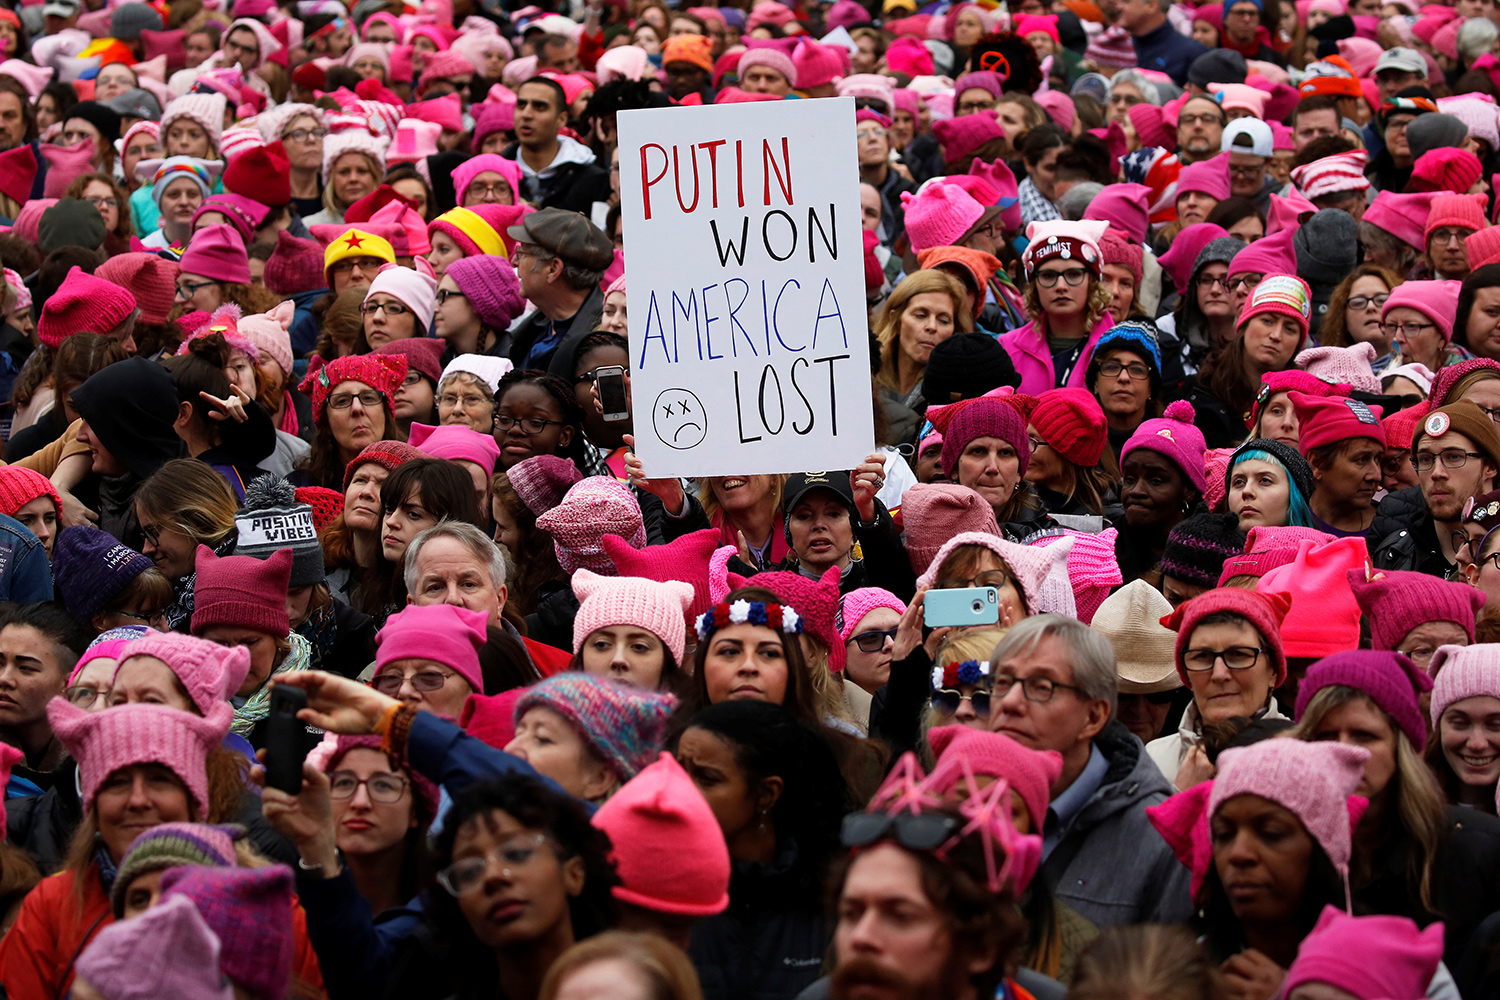 People gather for the Women's March in Washington U.S., January 21, 2017. REUTERS/Shannon Stapleton - RTSWQGE